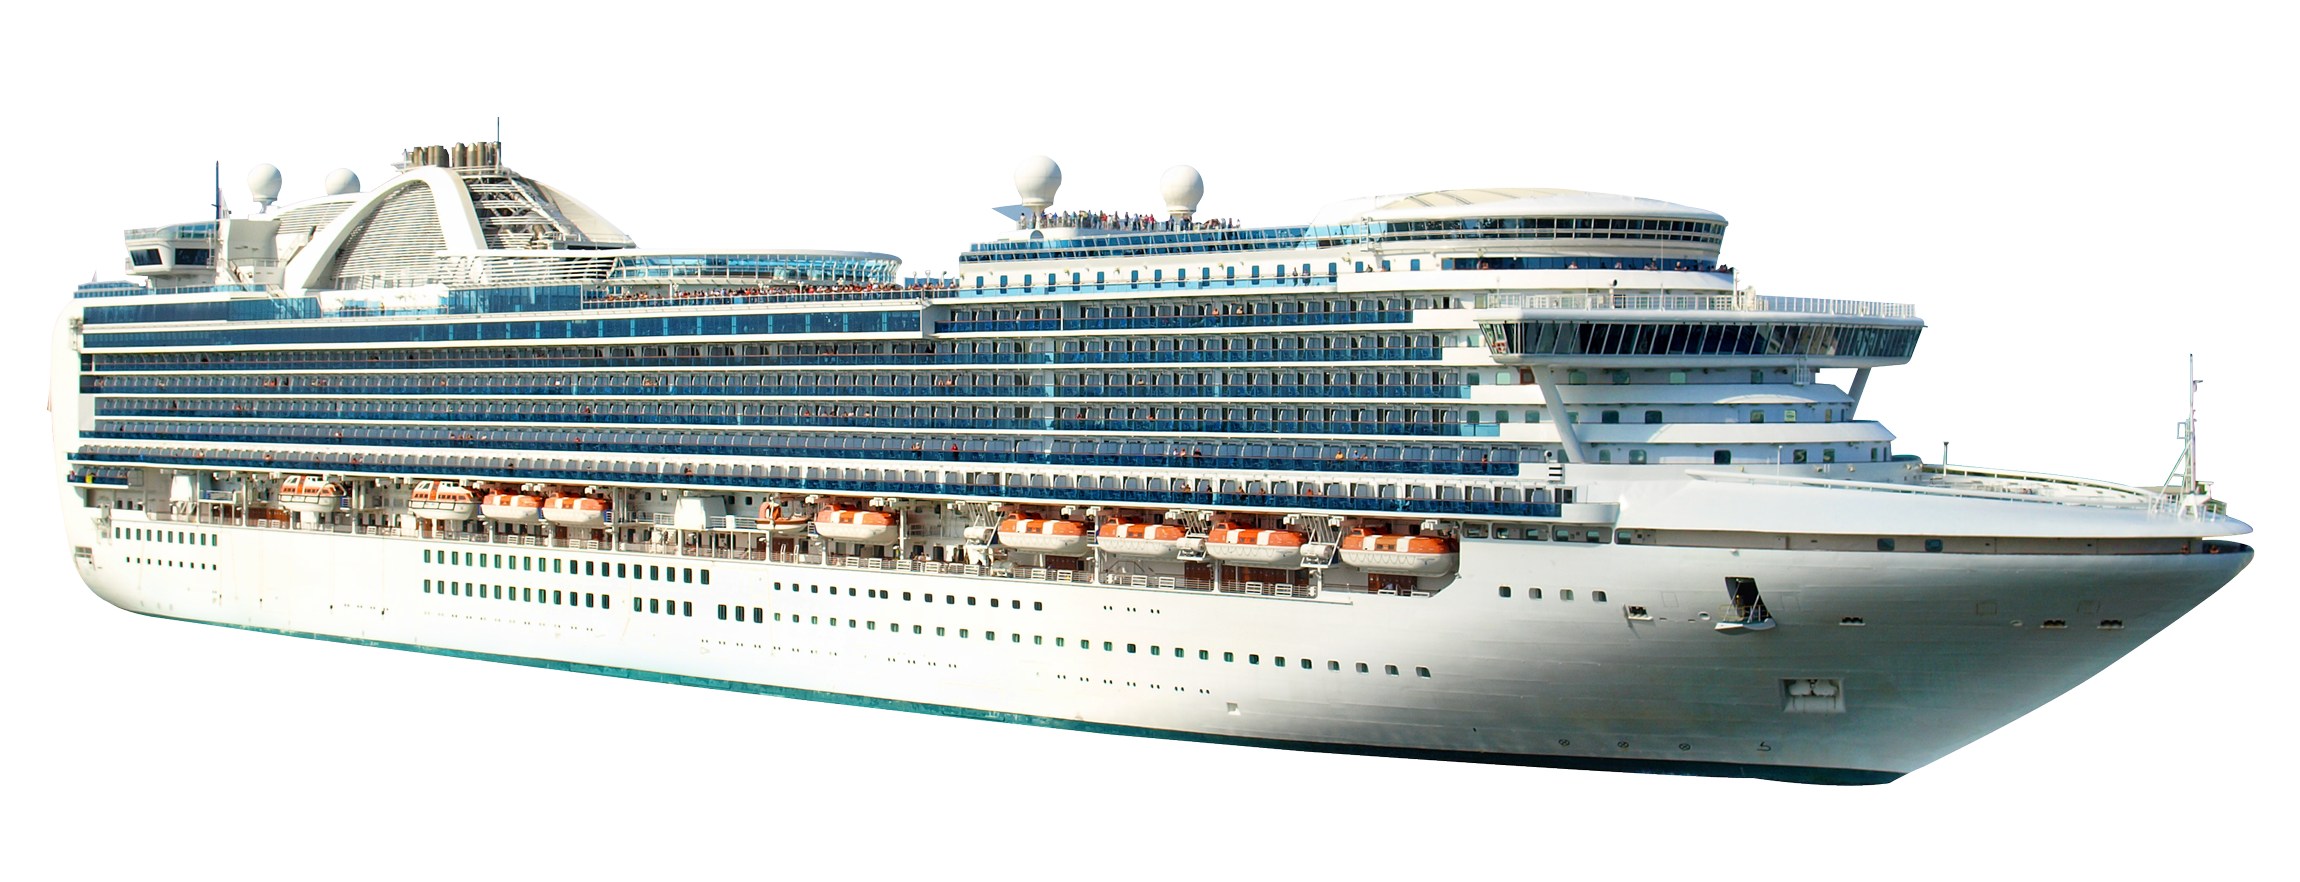 Cruise Ship PNG Free Download - Cruise Ship PNG